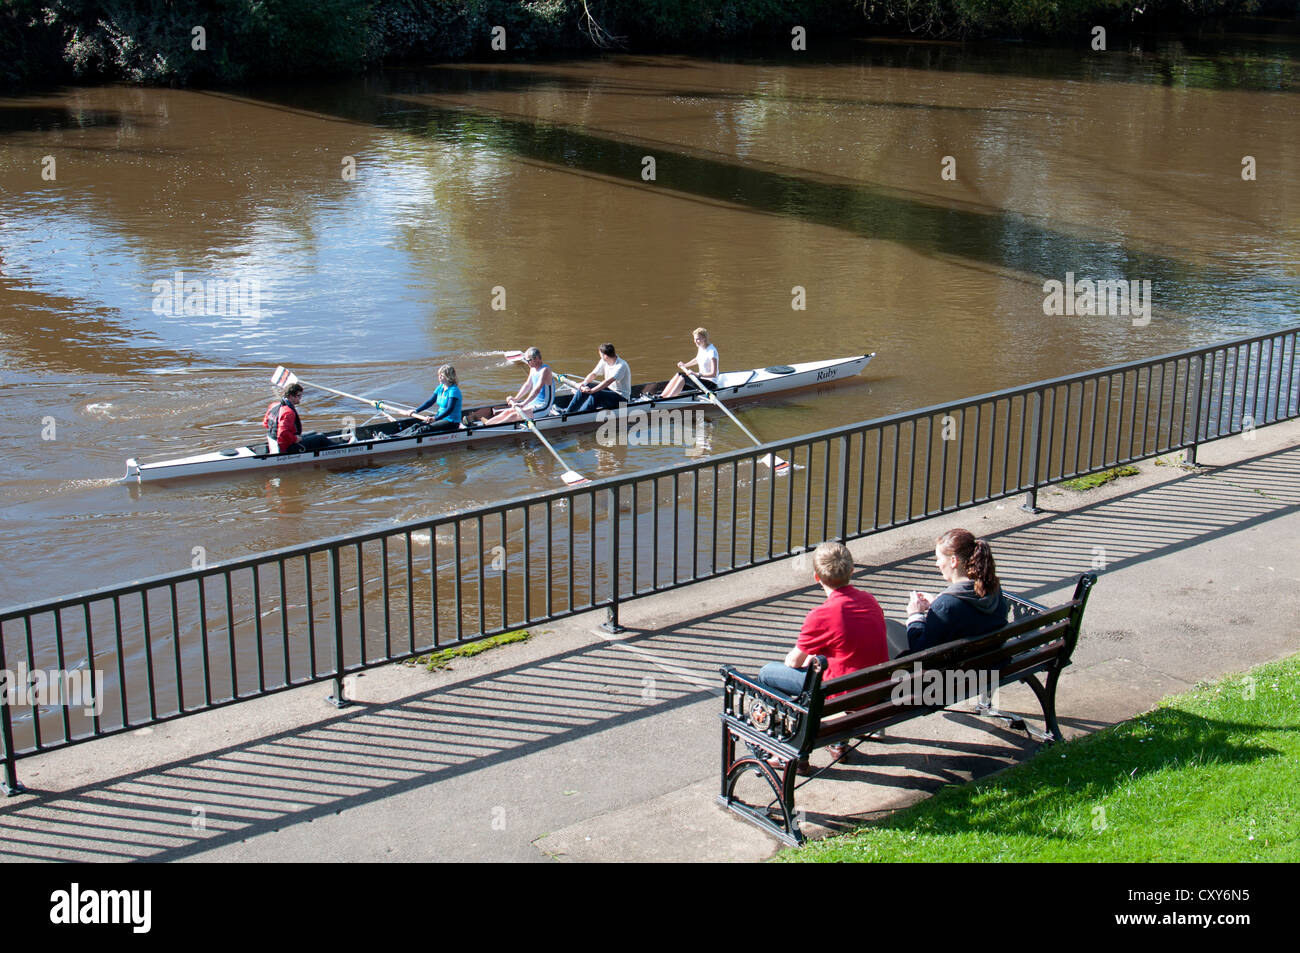 Rowing on River Severn, Worcester, UK - Stock Image